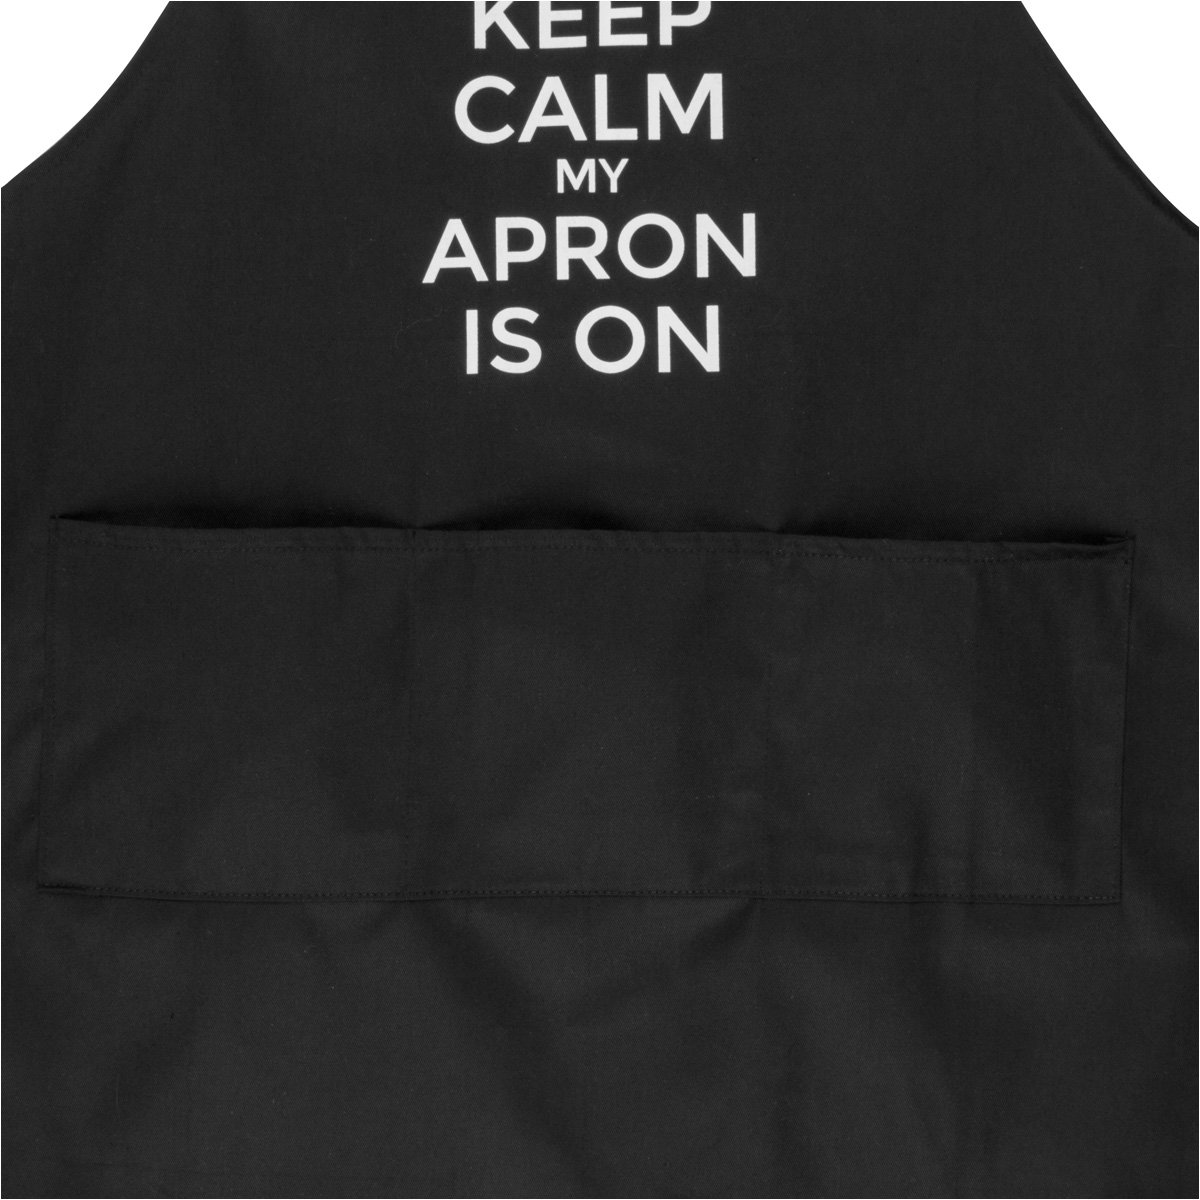 White apron old school rs - Amazon Com Kitchenlife Keep Calm My Apron Is On Chef Quality Cooking Apron Black In Color For Cooking Baking Crafting Woodwork Home Kitchen